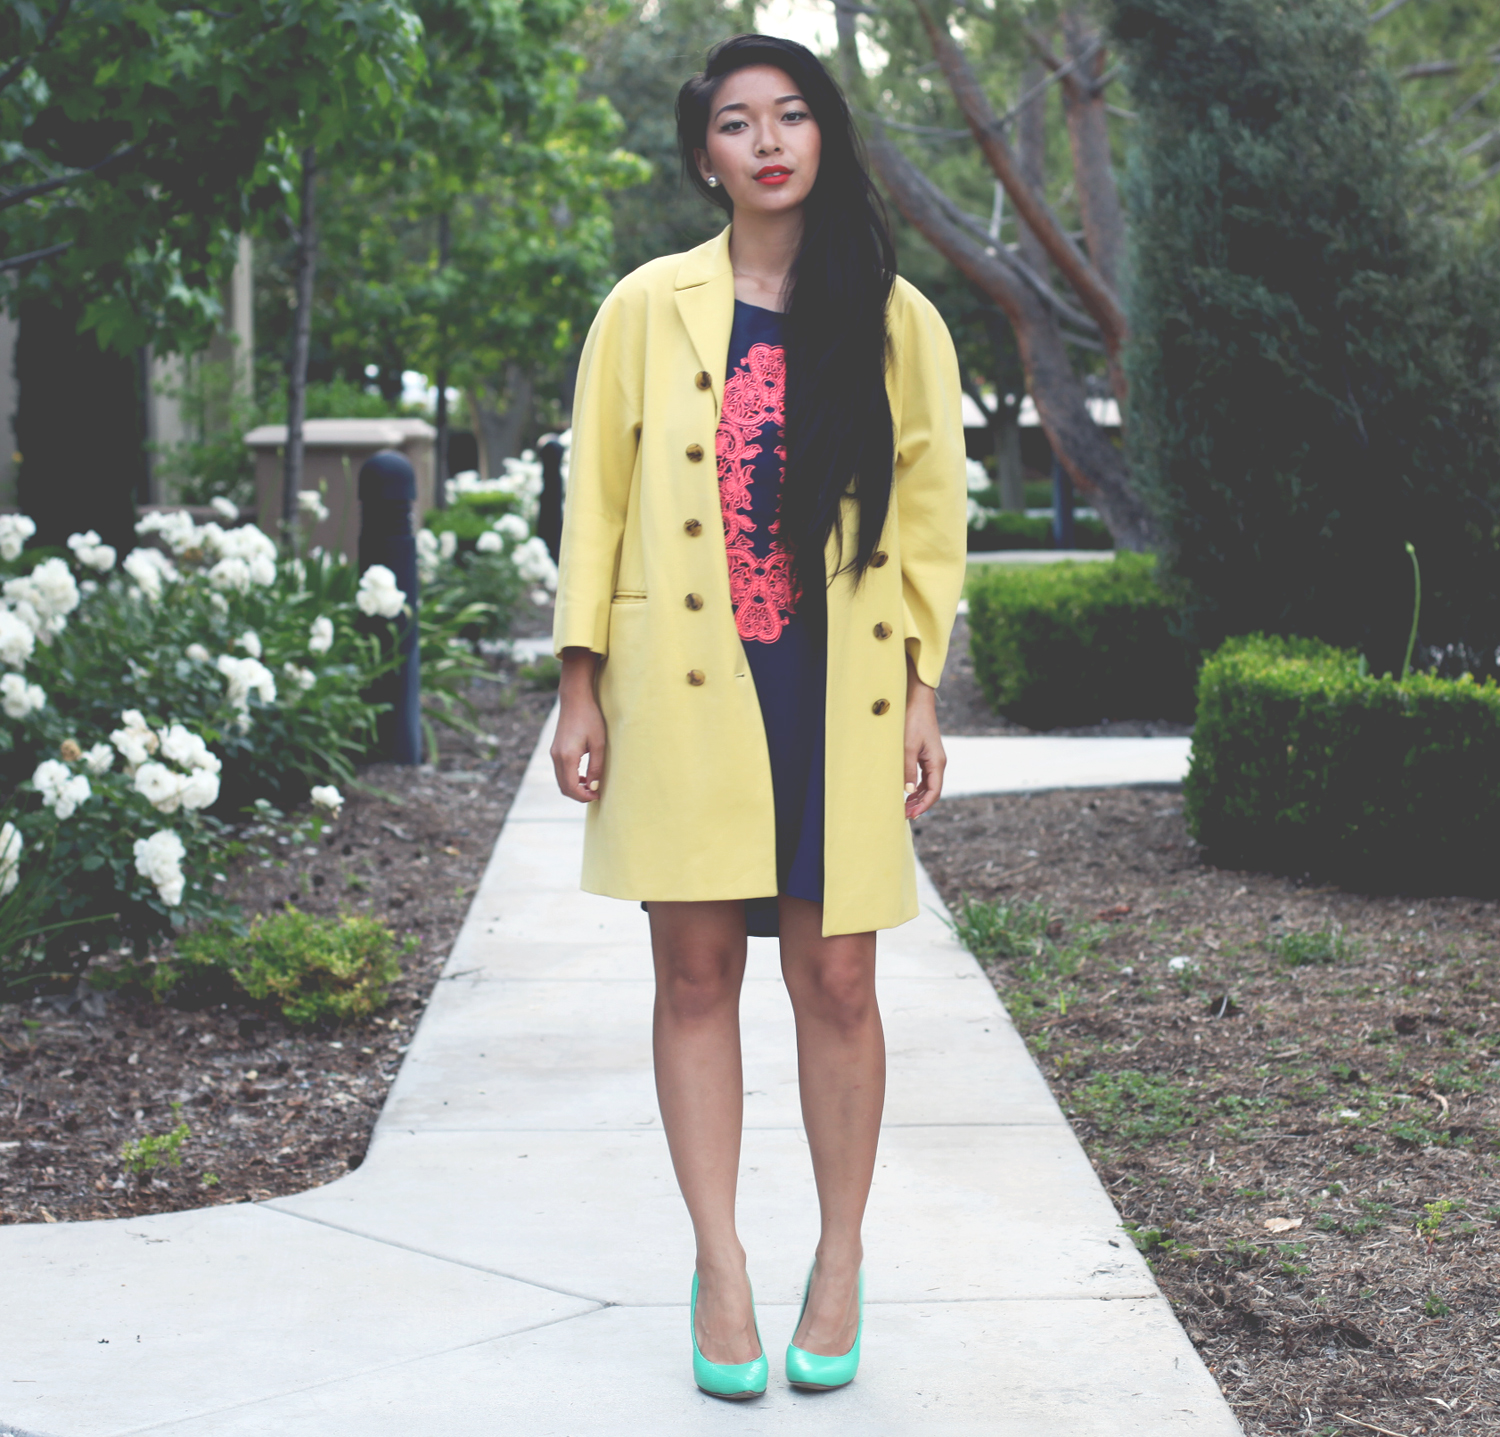 Honey & Silk wearing yellow Jill Stuart coat, Sugarlips filigree dress, and Cole Haan Chelsea Pumps